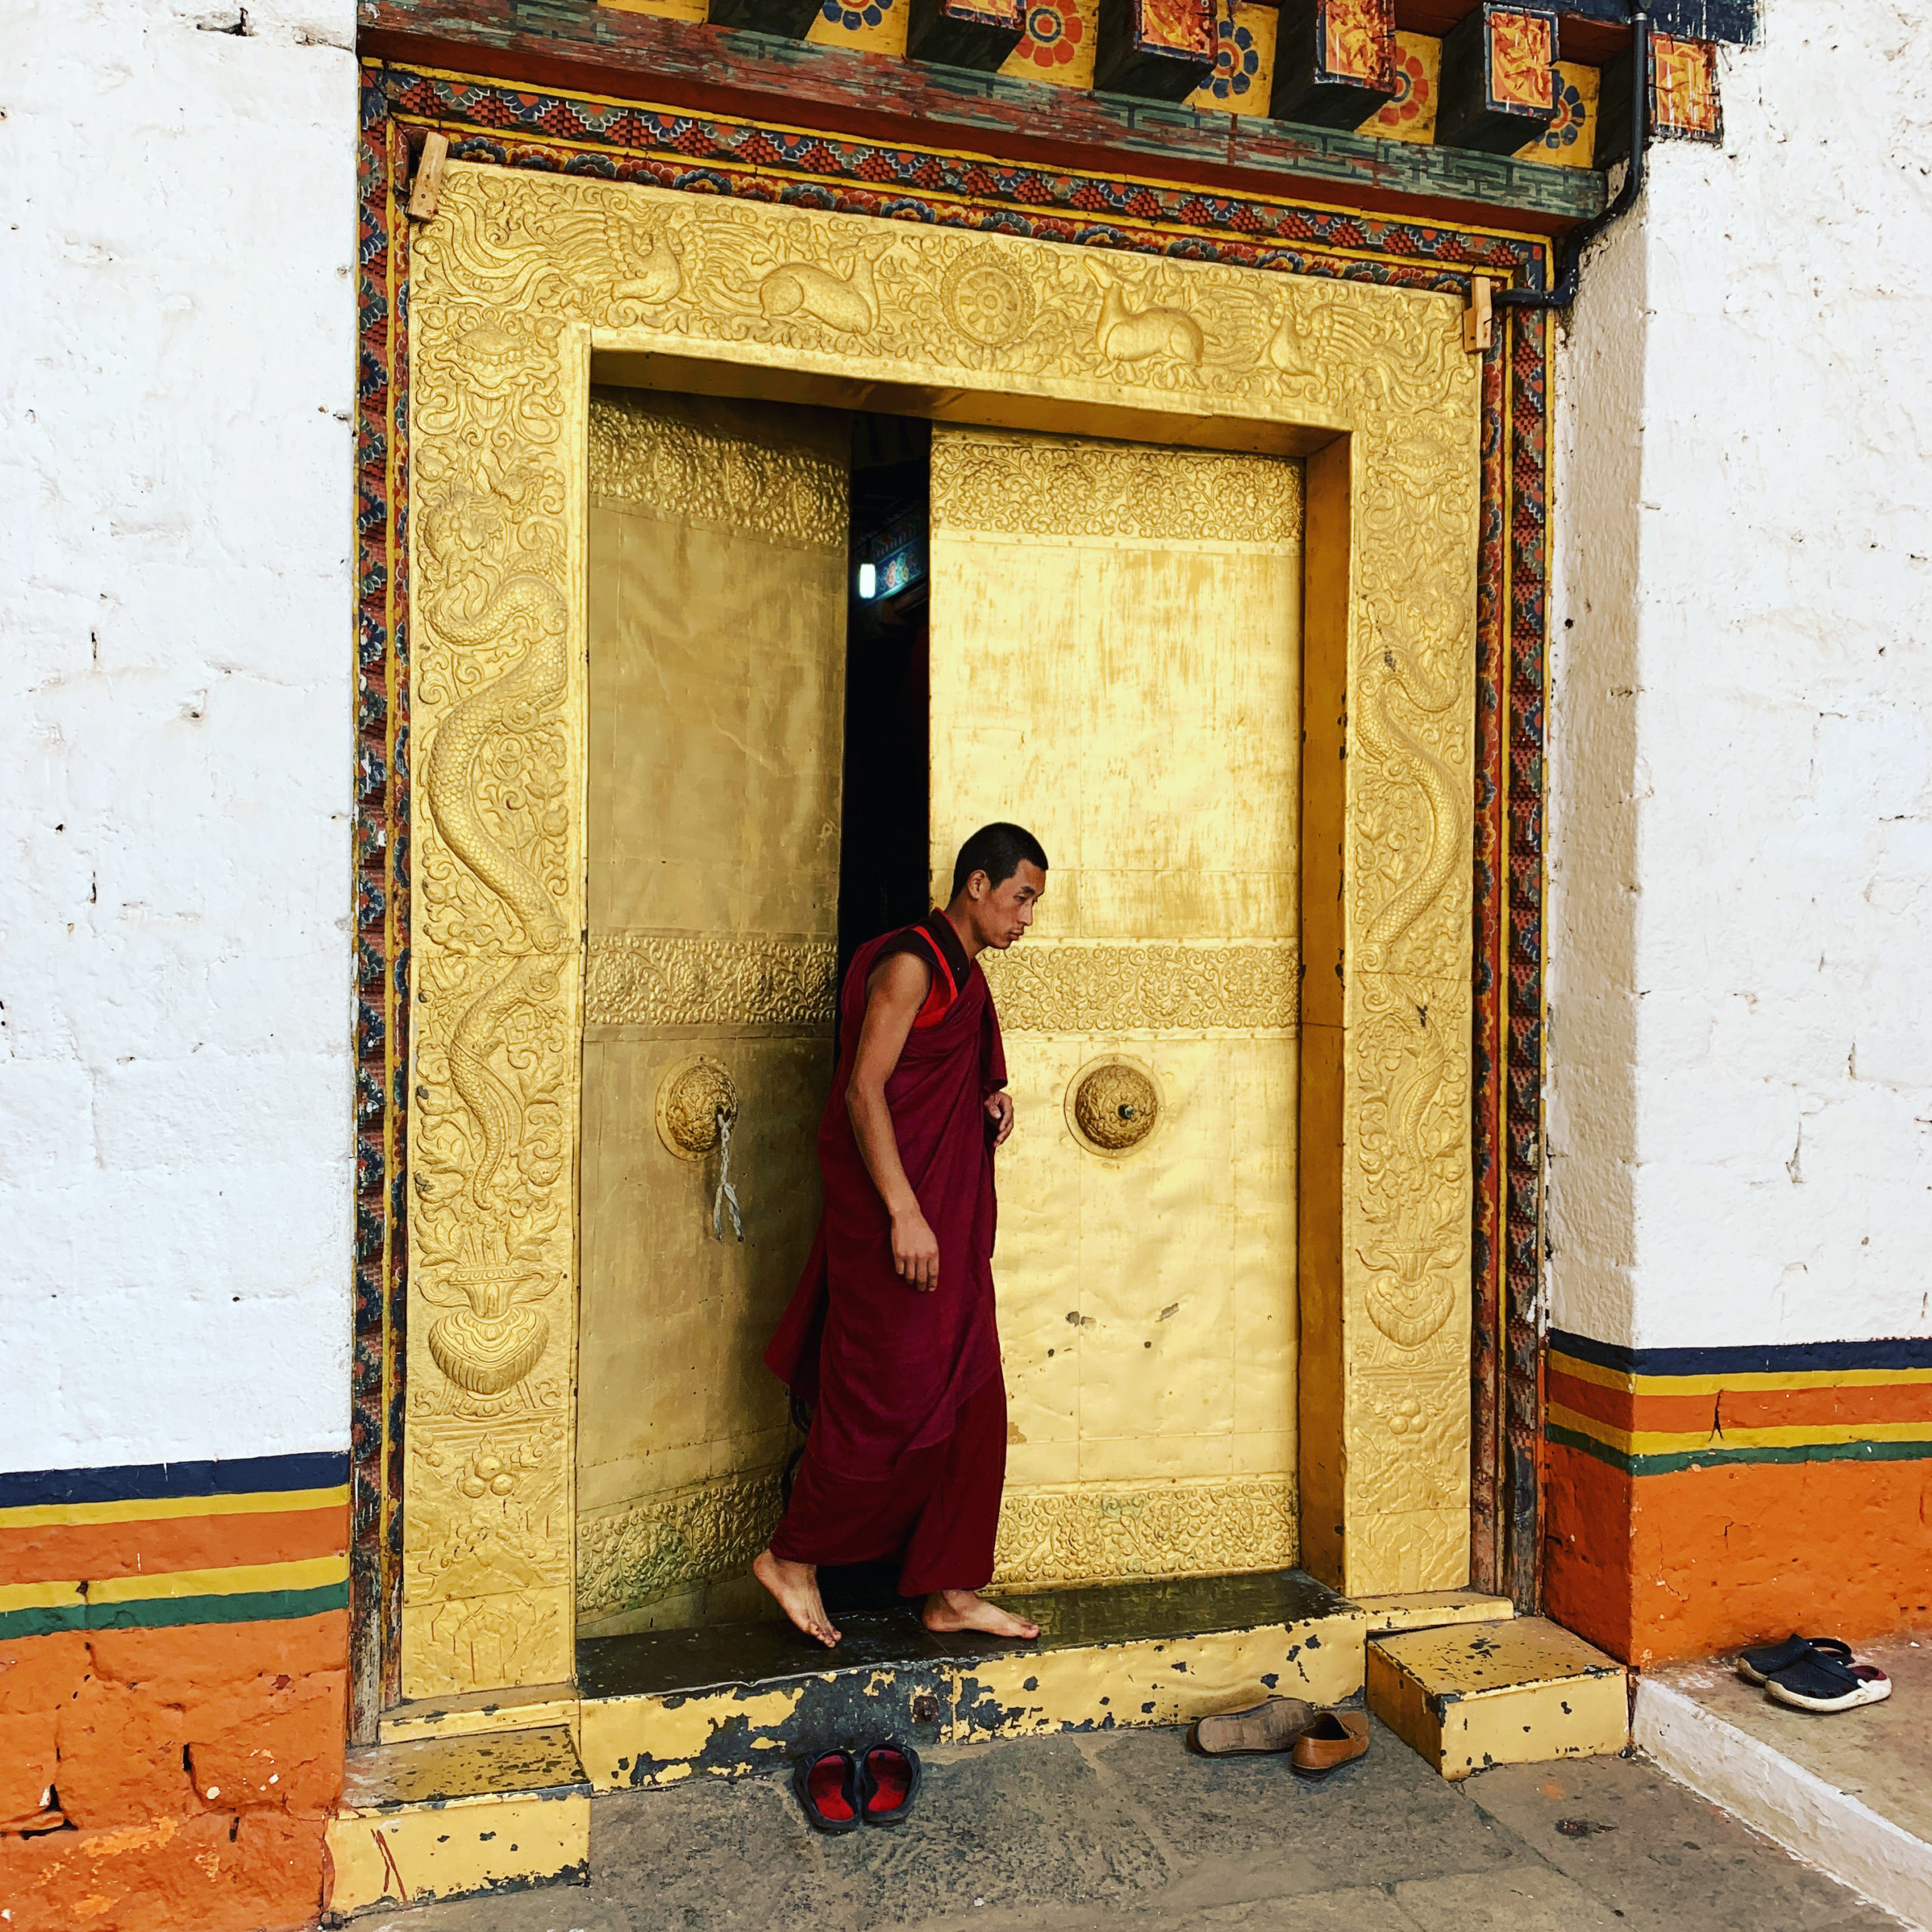 Buddhist monch in his red habit exit from a golden painted gate